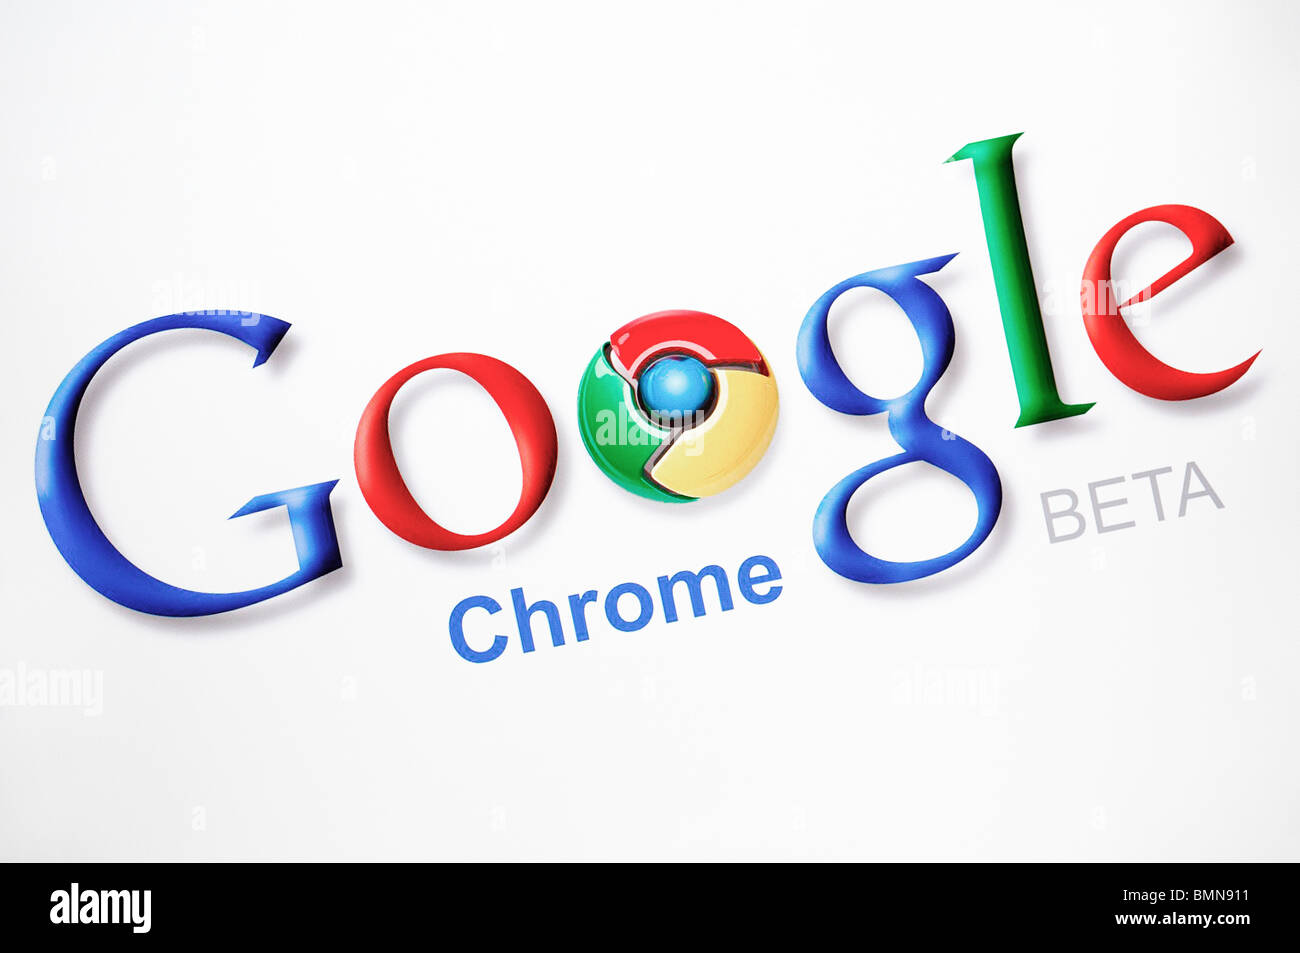 Google Chrome Web Browser Screenshot - Stock Image